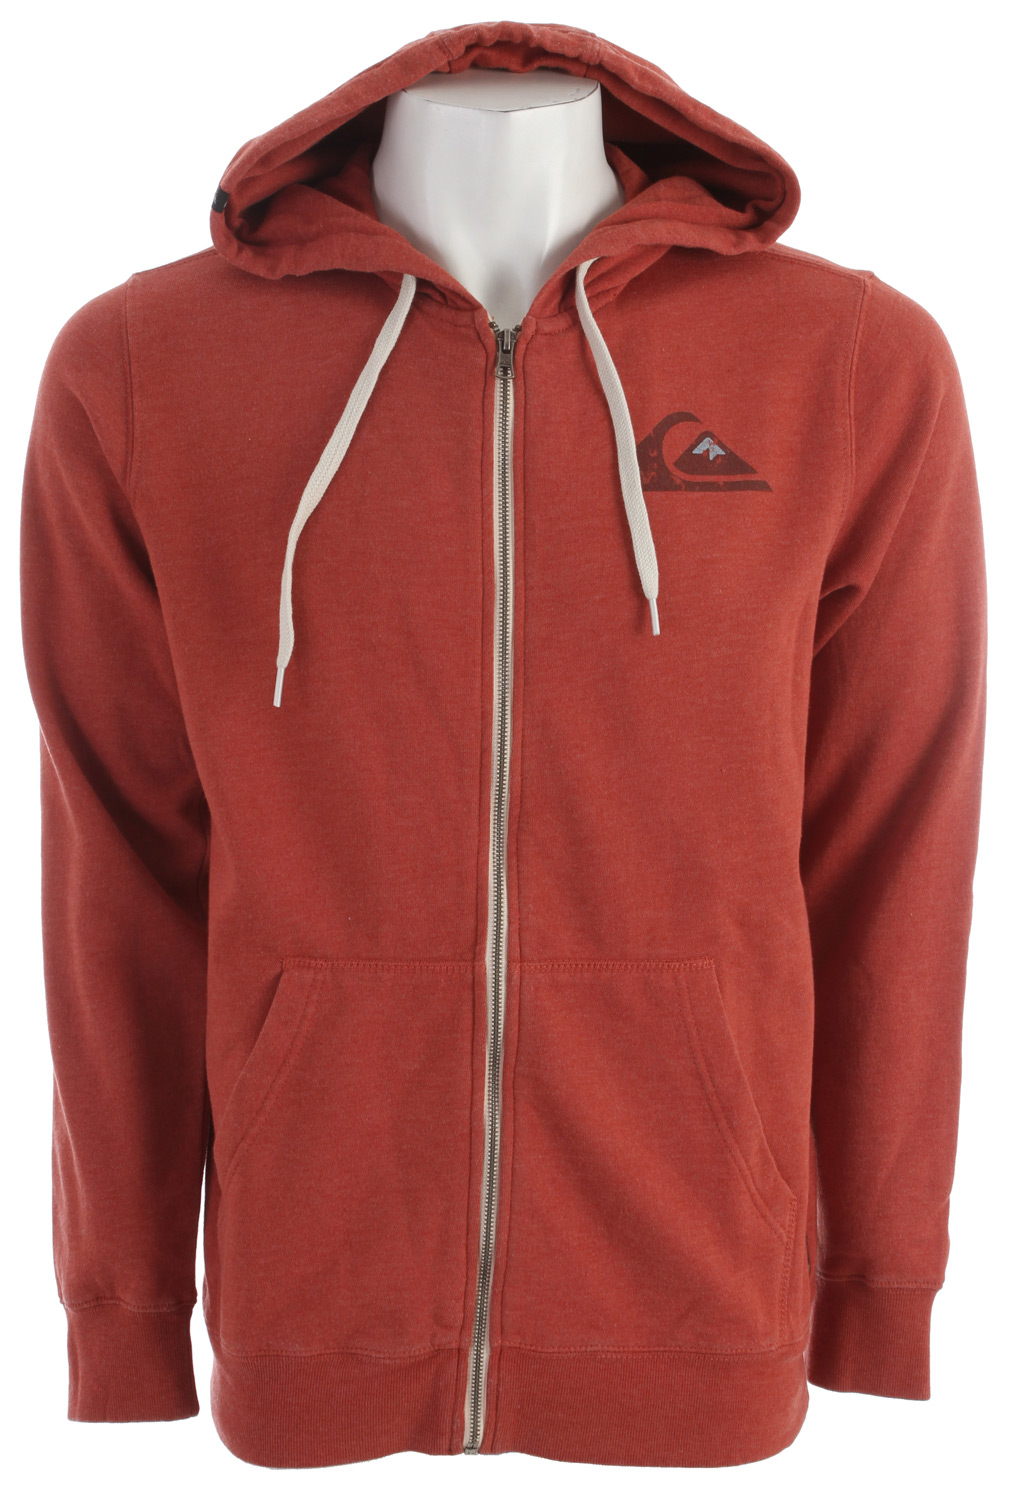 Surf Key Features of the Quiksilver Basiko Hoodie: 240gsm 60% cotton 40% polyester Full zip fleece with self hood liner Left chest screen print Exterior woven labels Contrast drawcords Ribbed cuffs/hem Pigment garment dye - $52.00